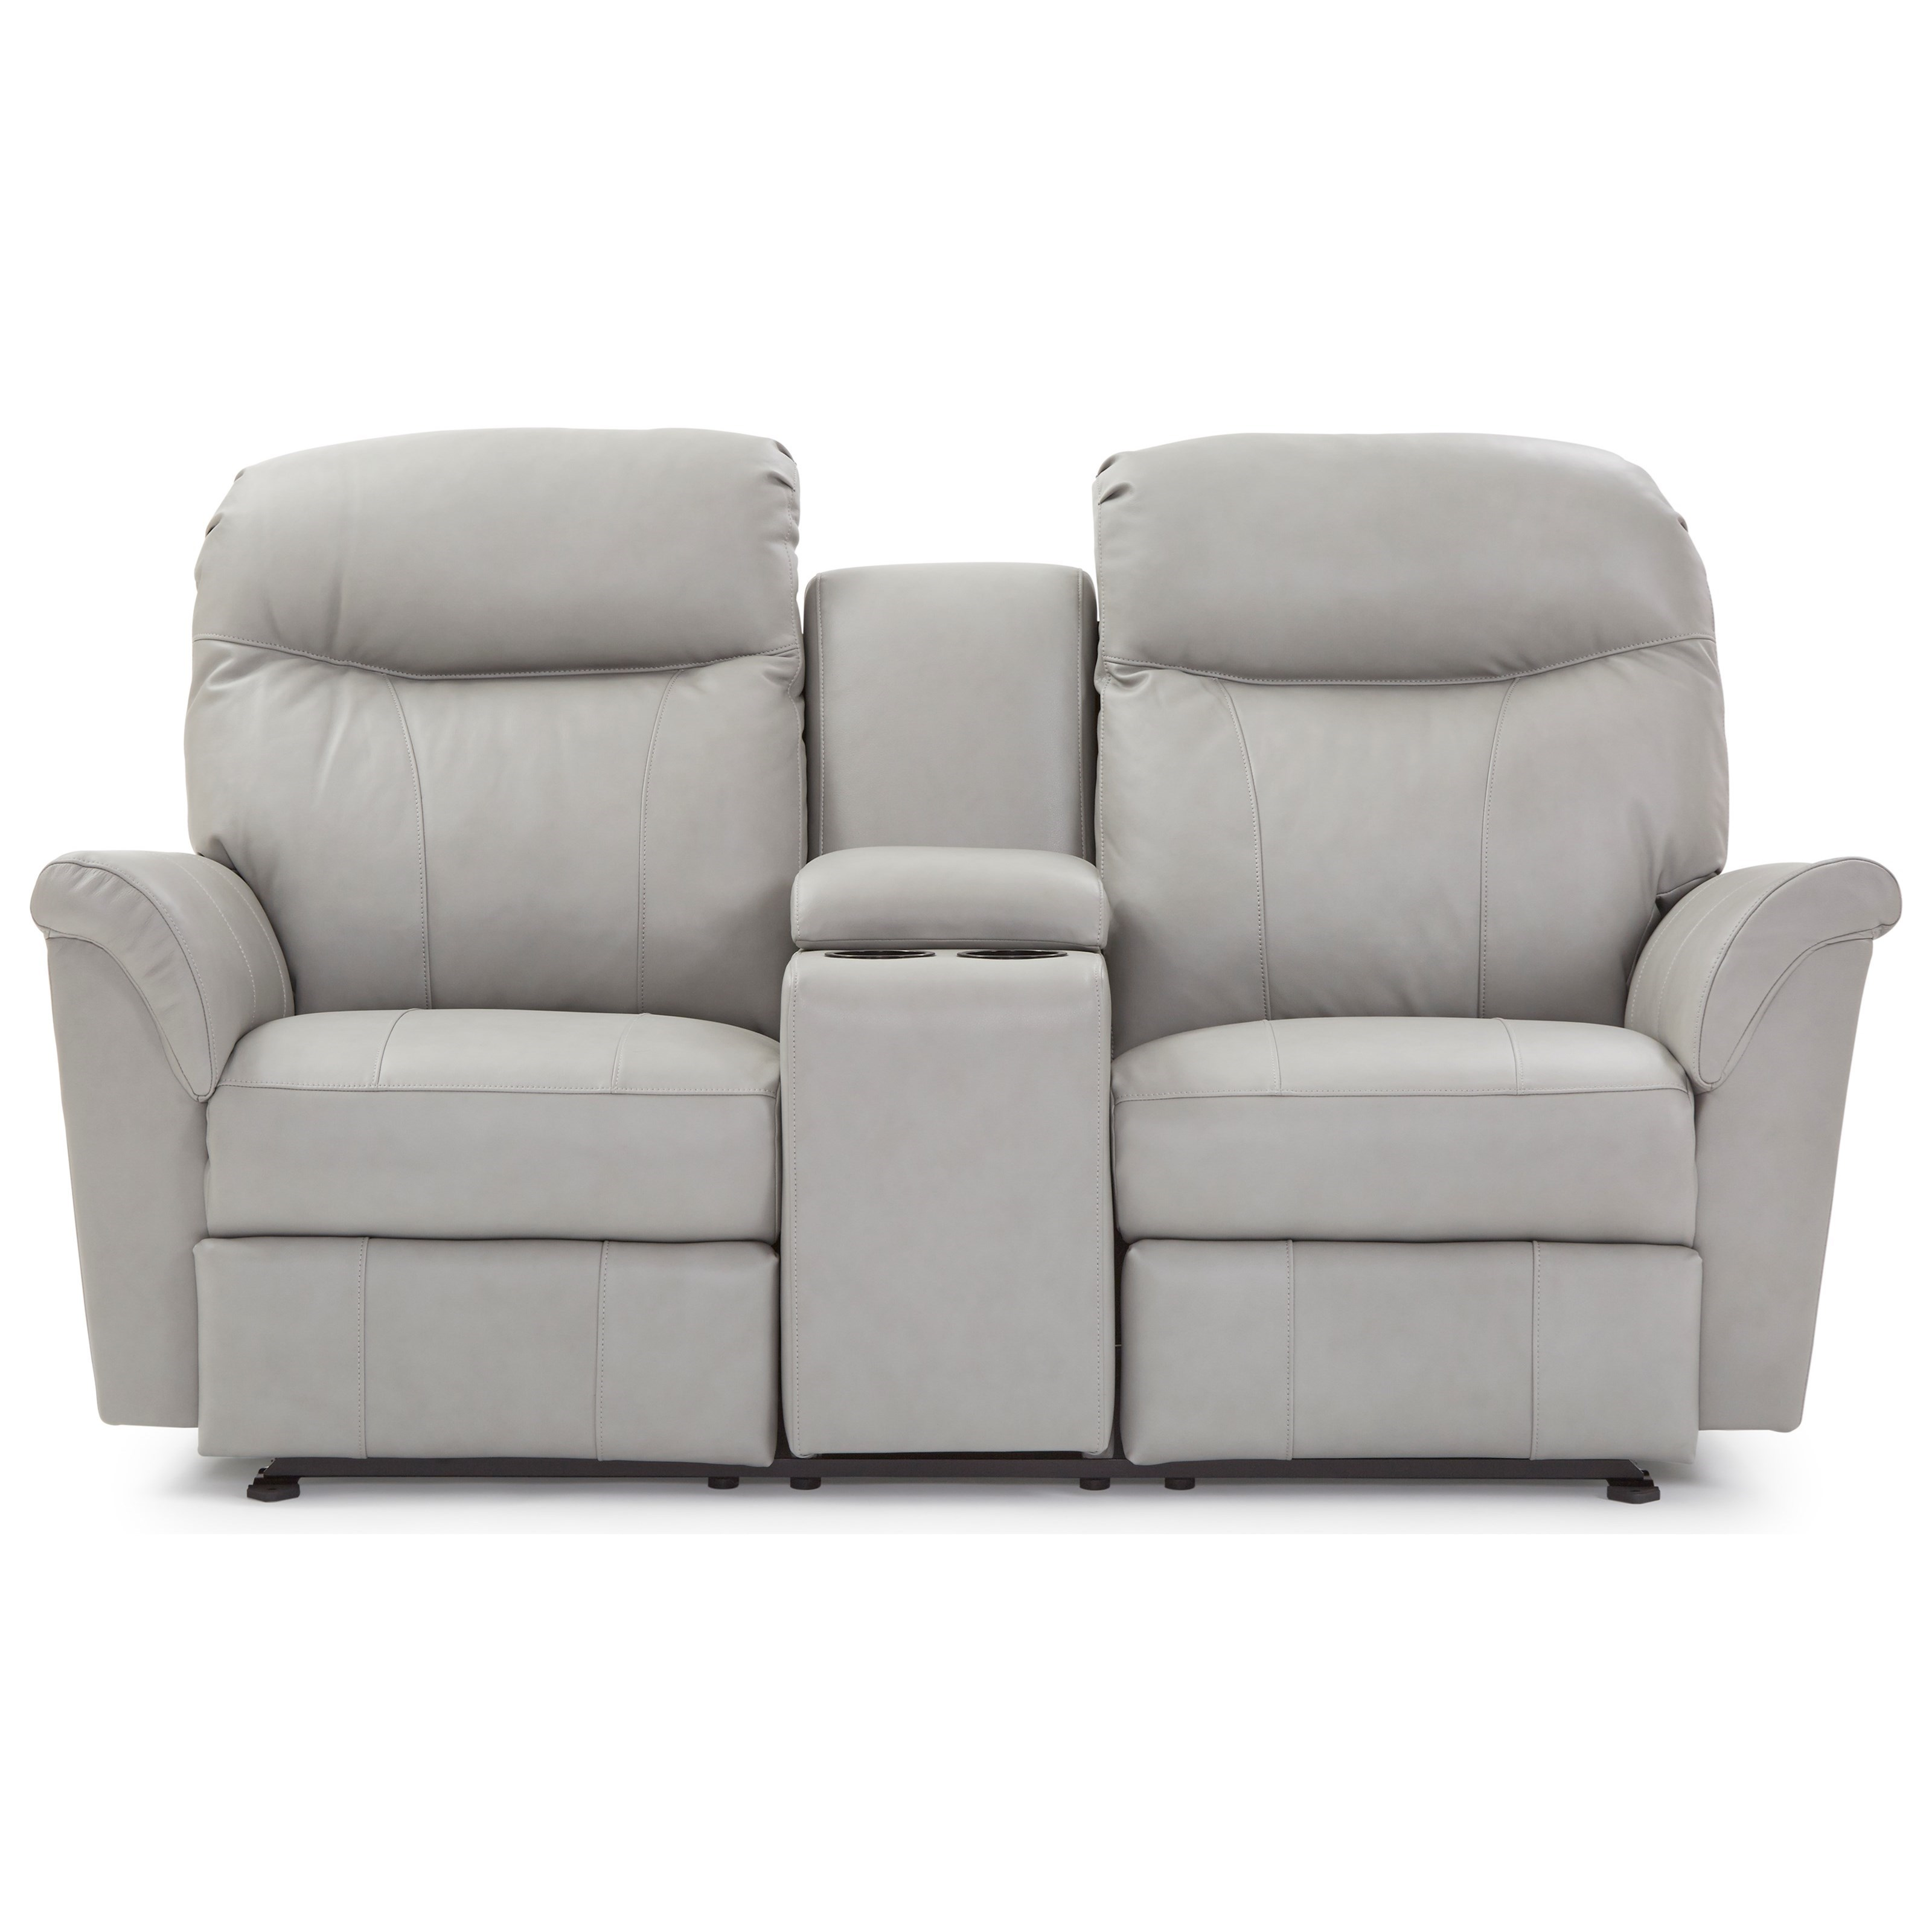 Best Home Furnishings Caitlin Casual Power Rocking Reclining Loveseat With Cupholder Storage Console Zak S Home Reclining Loveseats